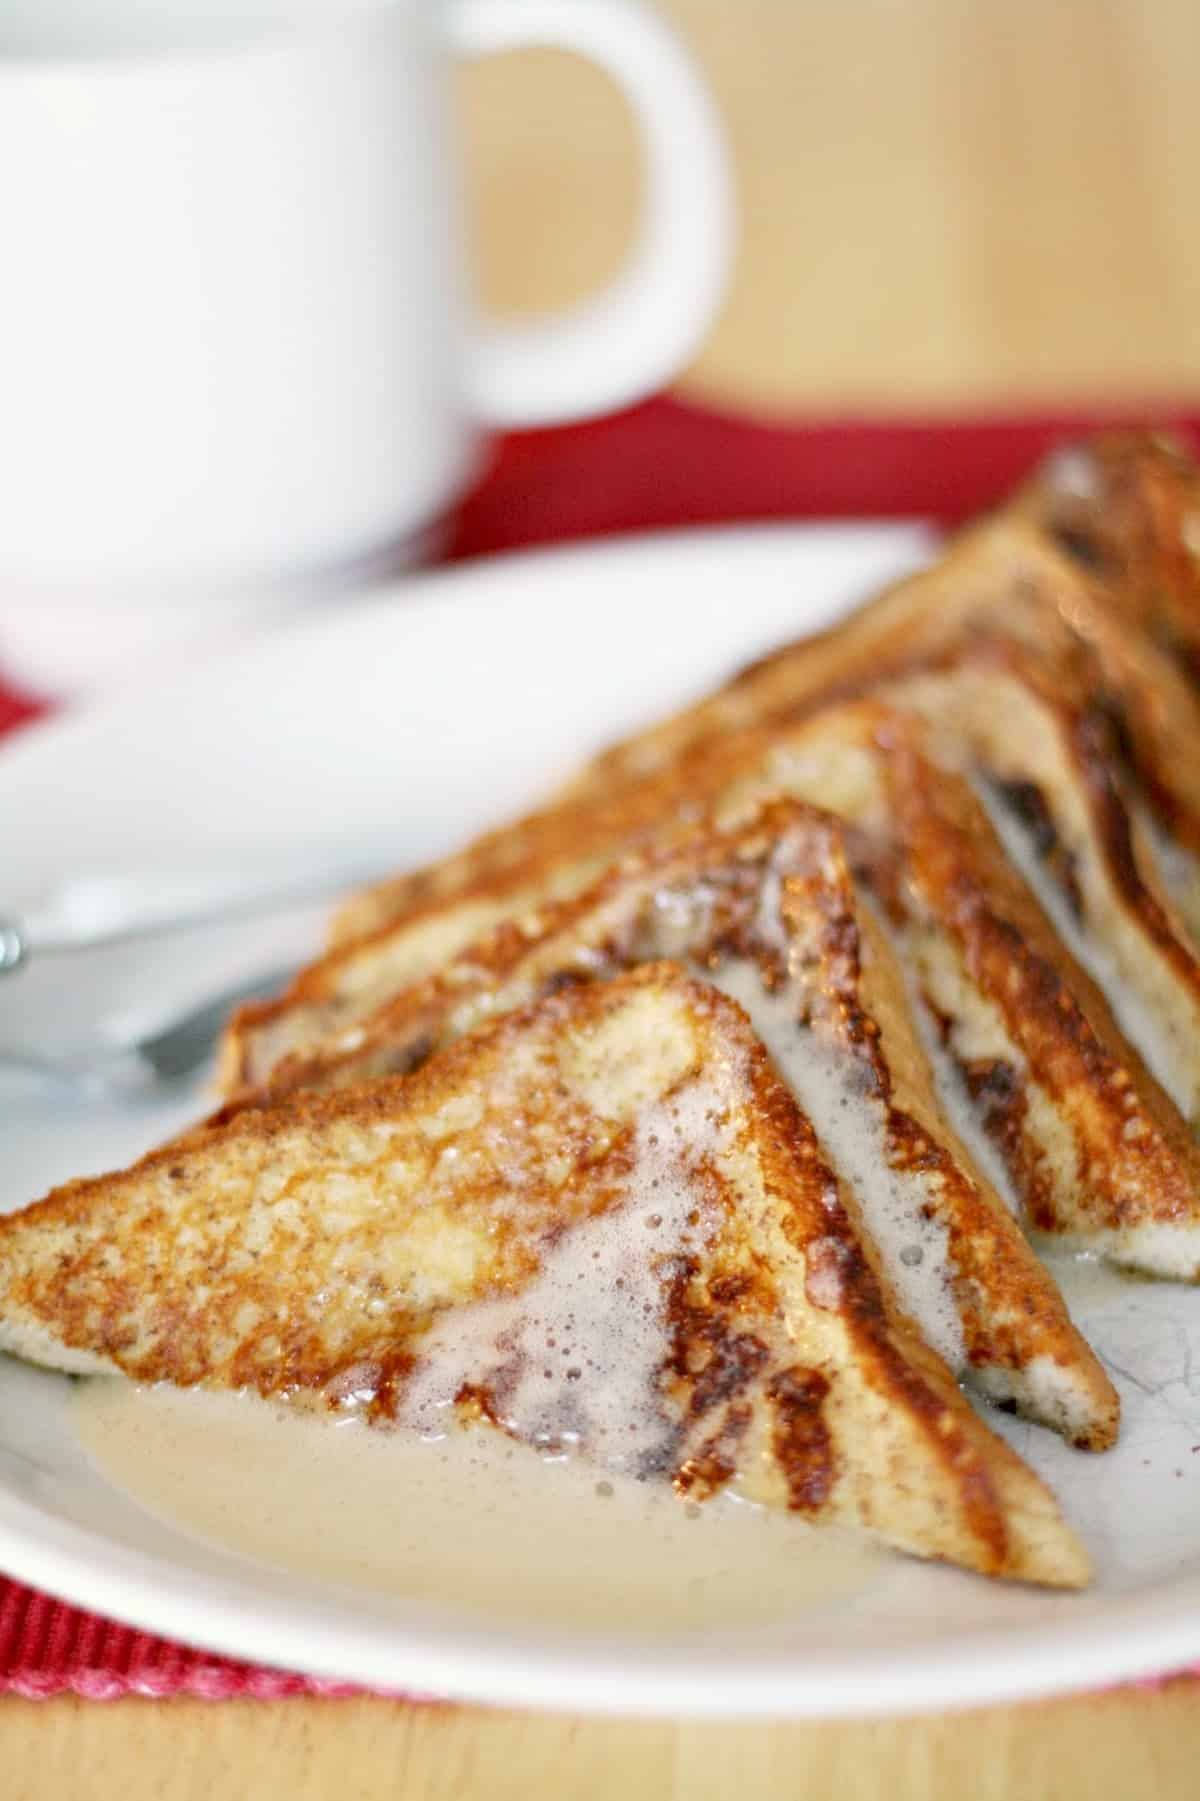 If you love seasonal flavors, this eggnog french toast recipe is perfect! Make it on a crisp fall morning and pair with buttermilk syrup.